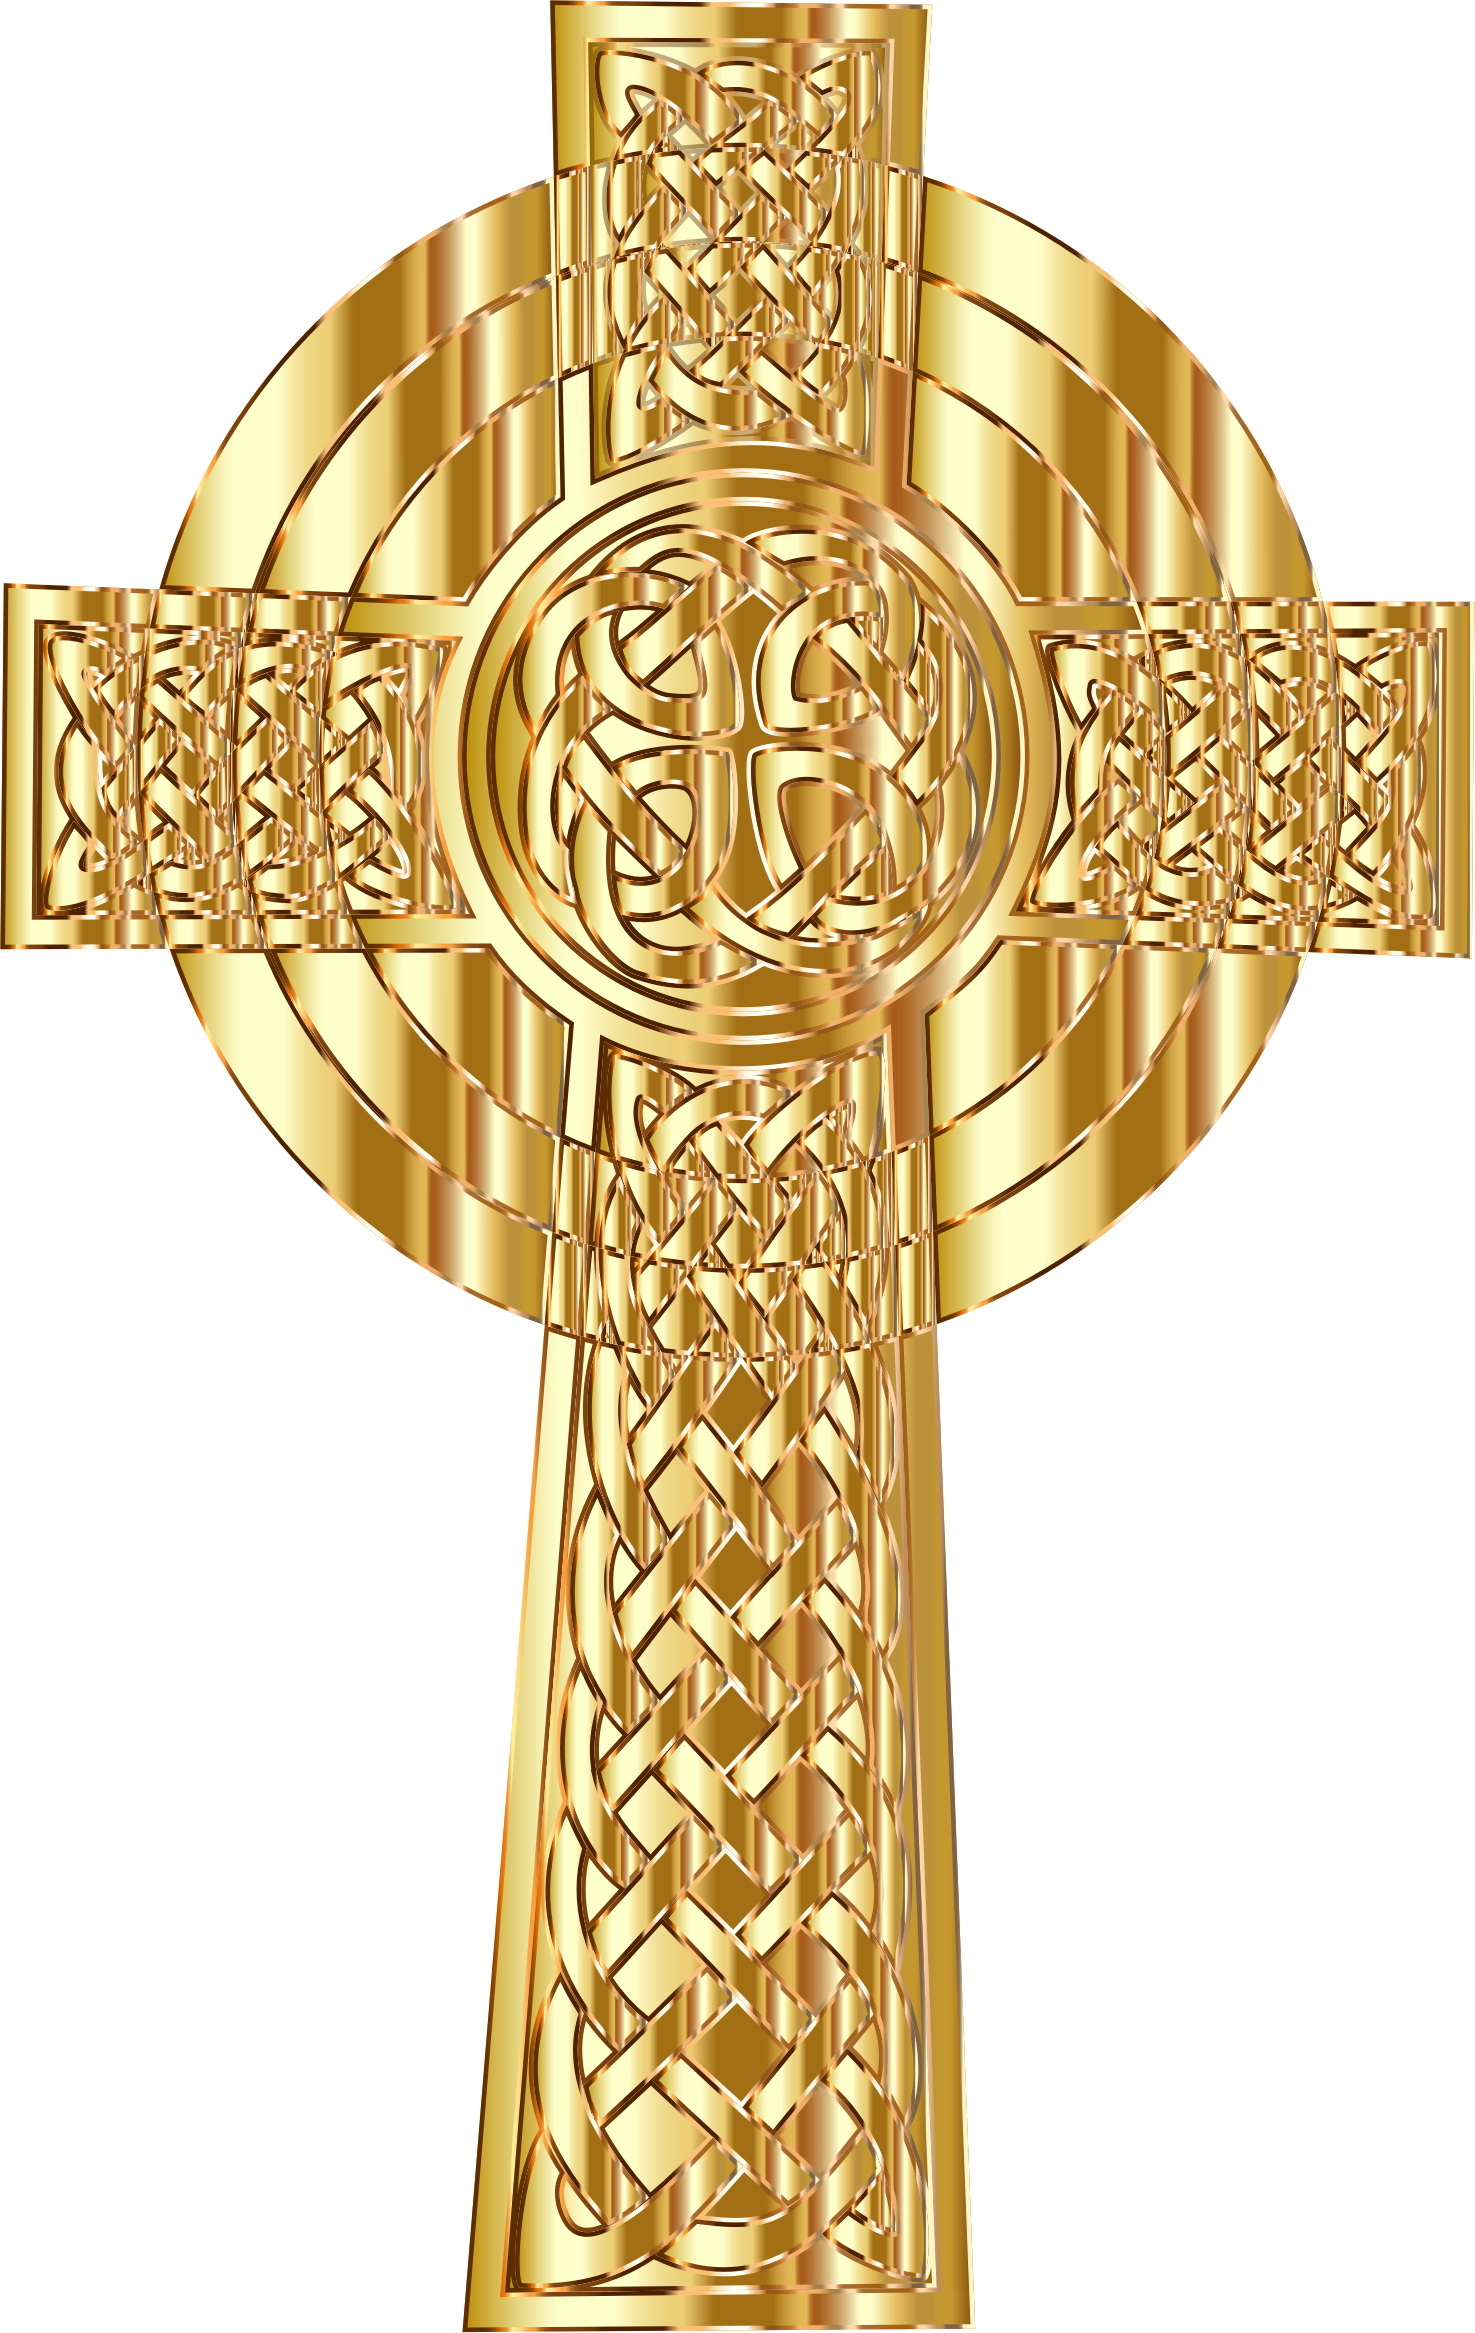 Celtic cross gold clipart graphic royalty free library Clipart - Golden Celtic Cross 2 graphic royalty free library